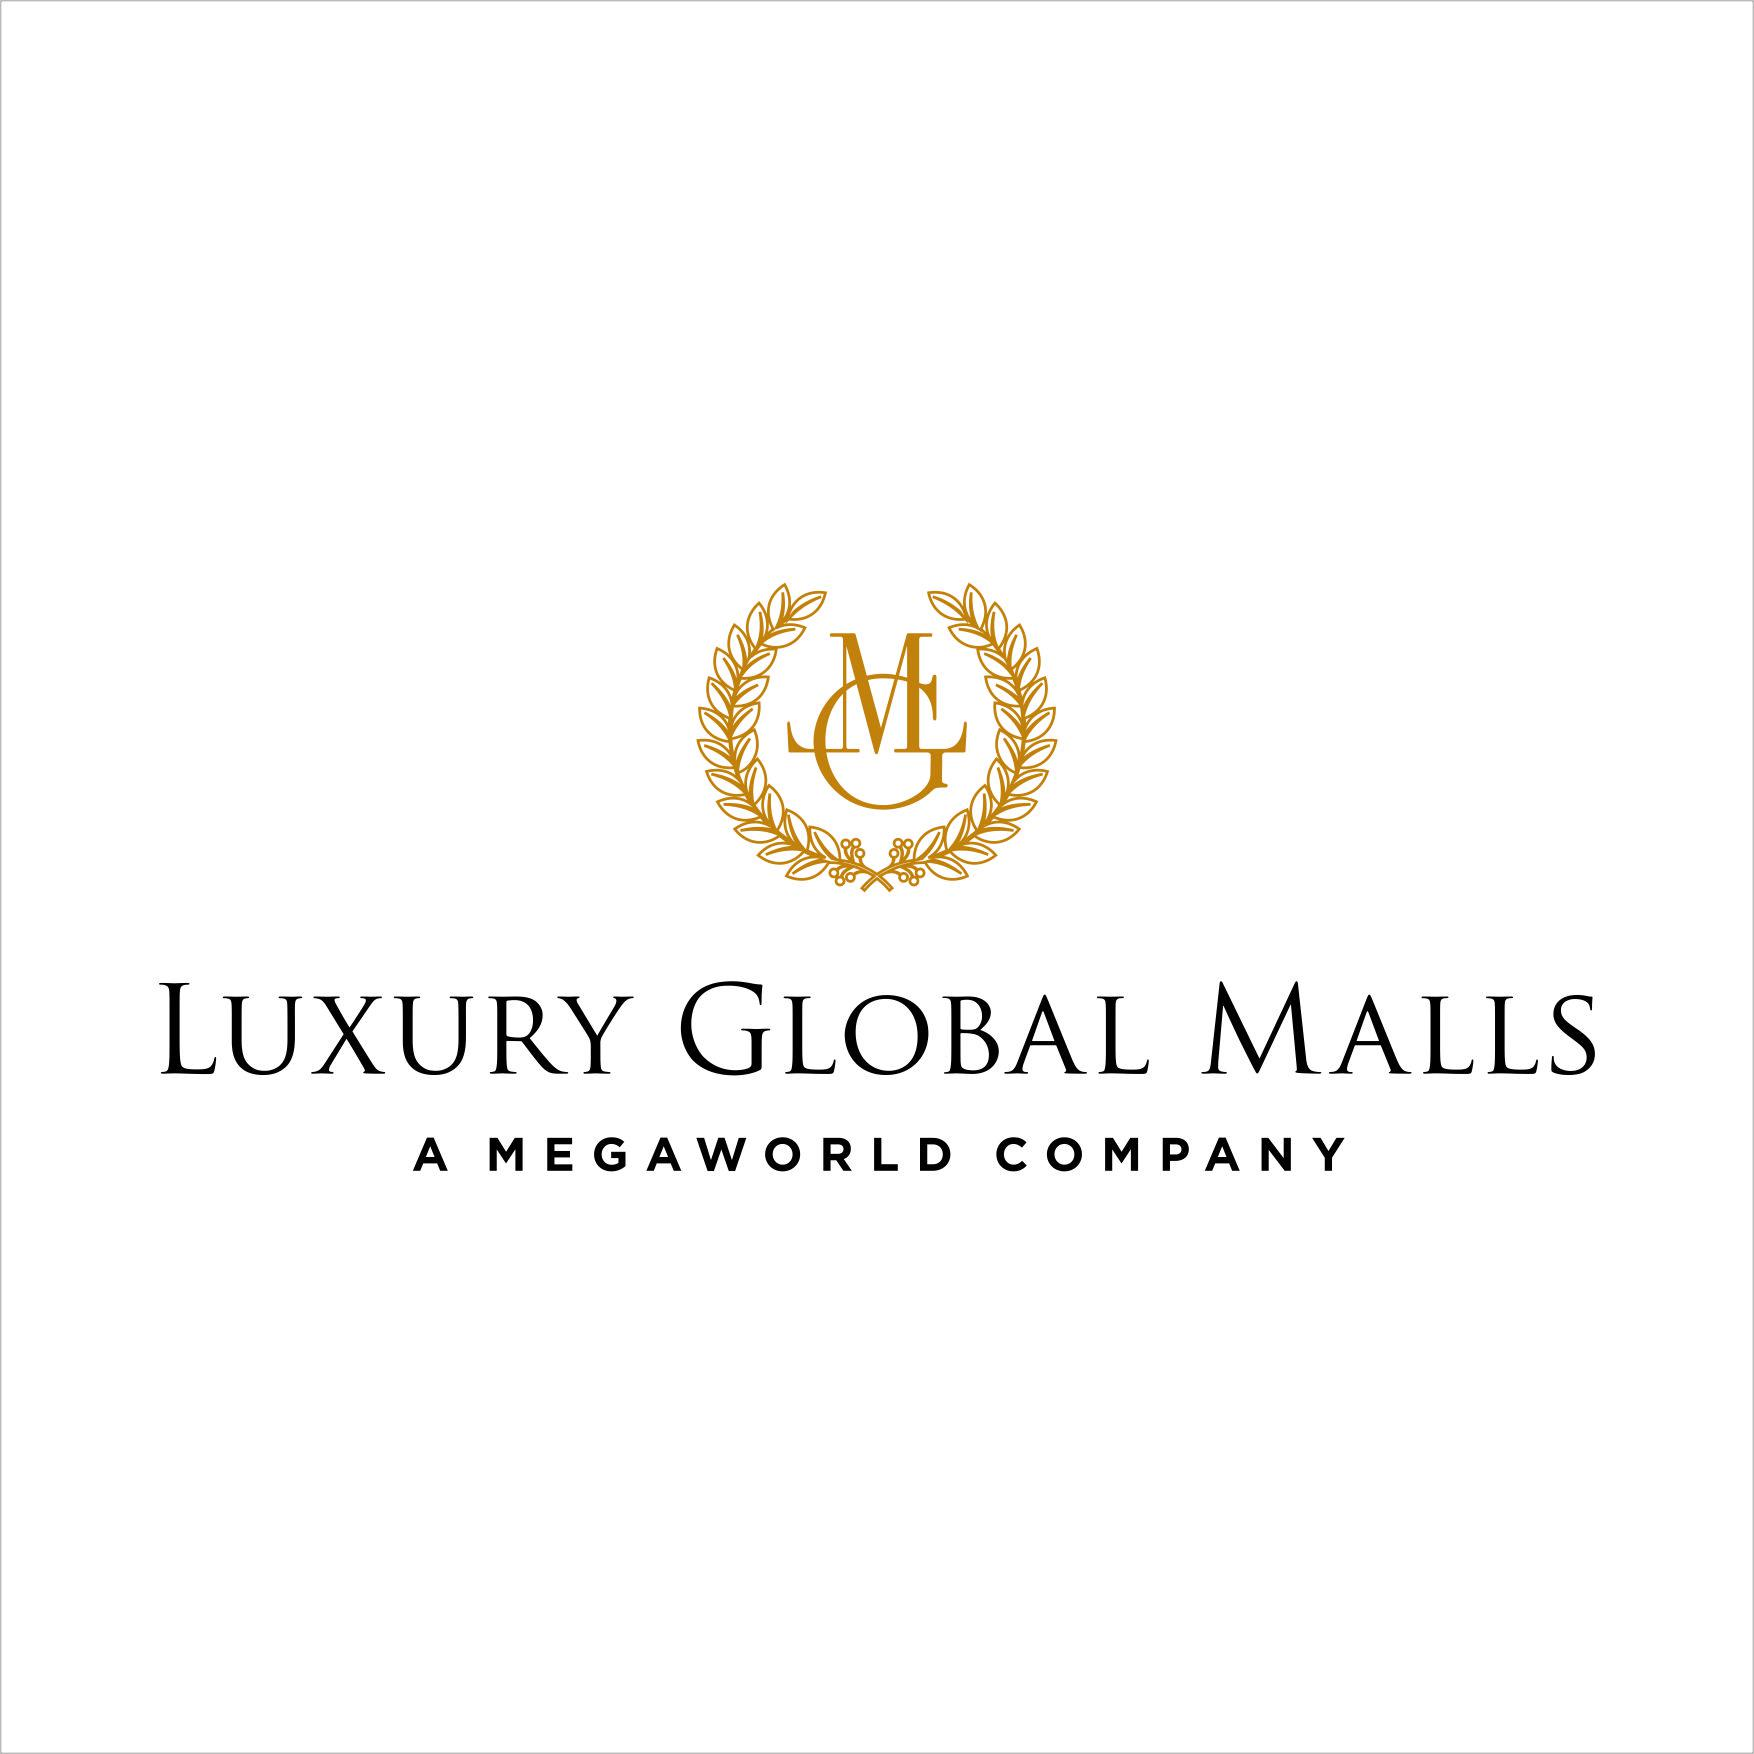 Luxury Global Malls Inc., A Megaworld Company